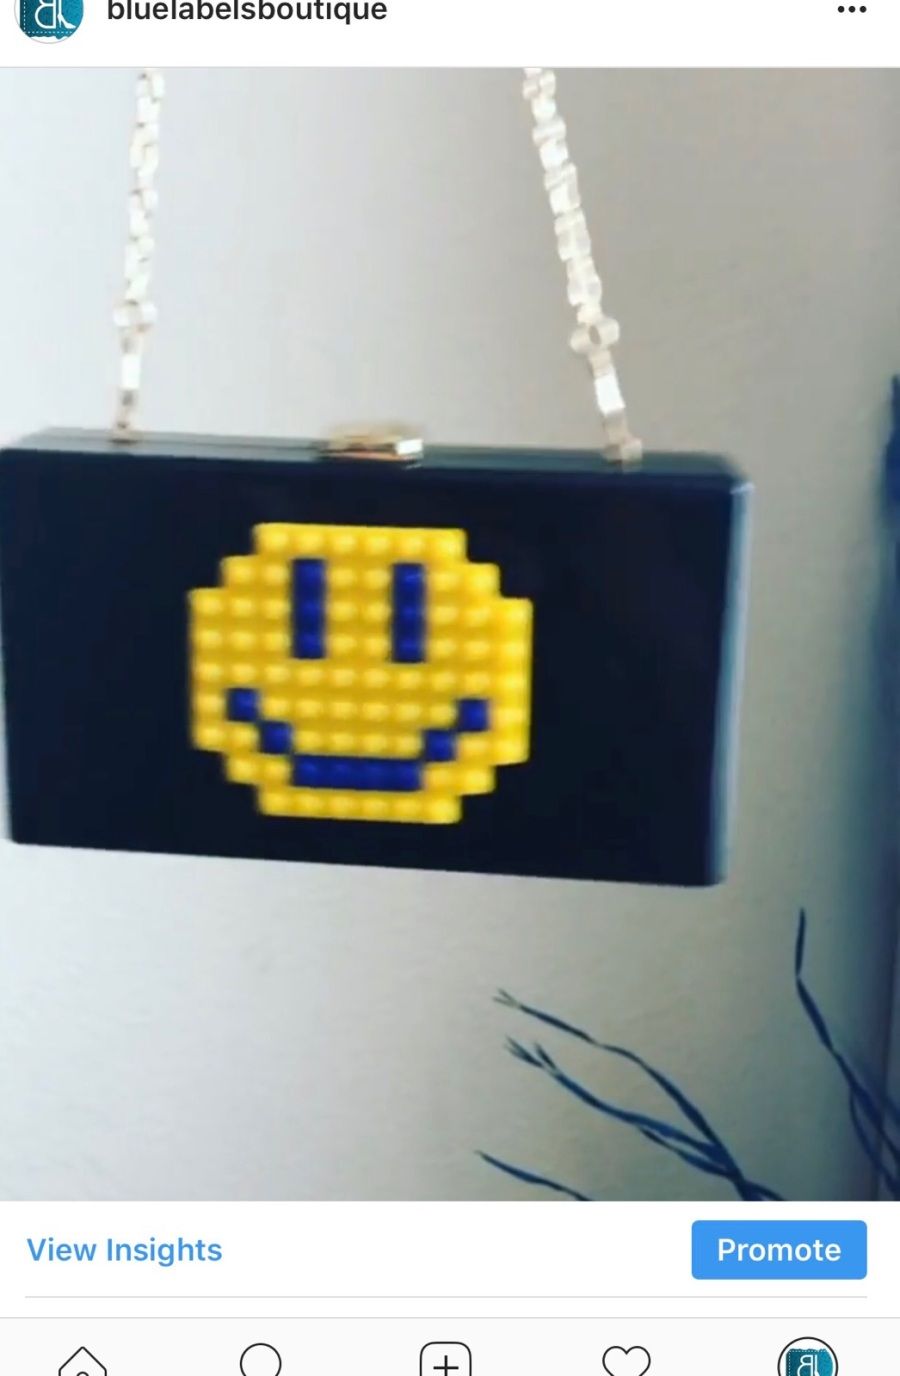 pic of clutch with a smiley face blue labels boutique